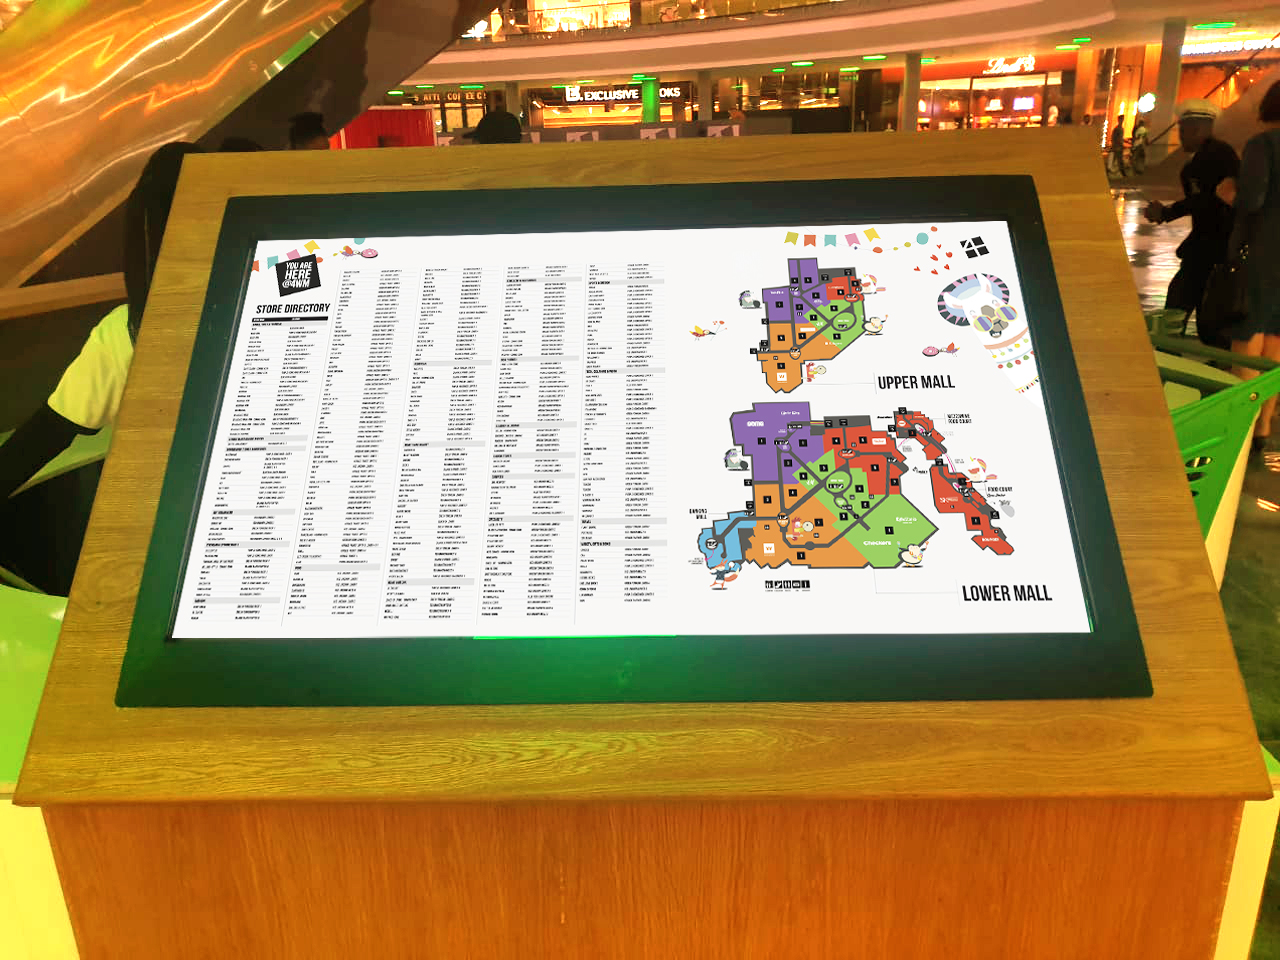 Amorphous_customer experience design_in-mall navigation_brand campaign_Fourways Mall